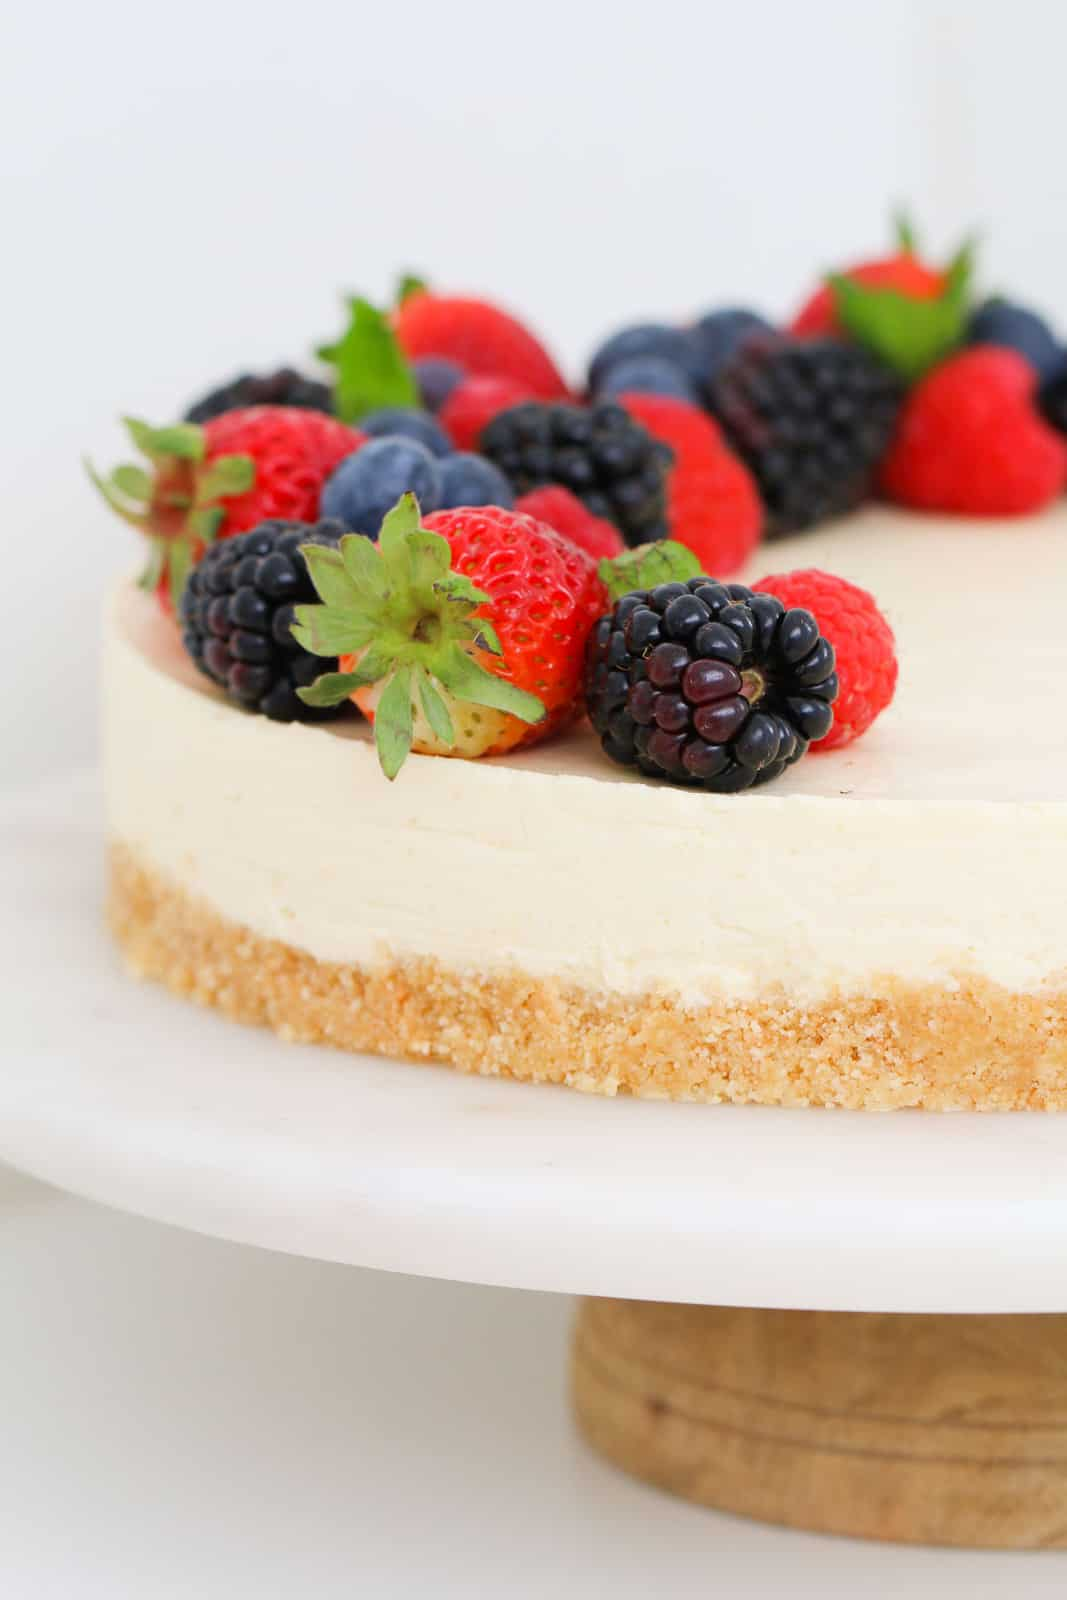 A cookie crumb lemon cheesecake on a cake stand with berries.